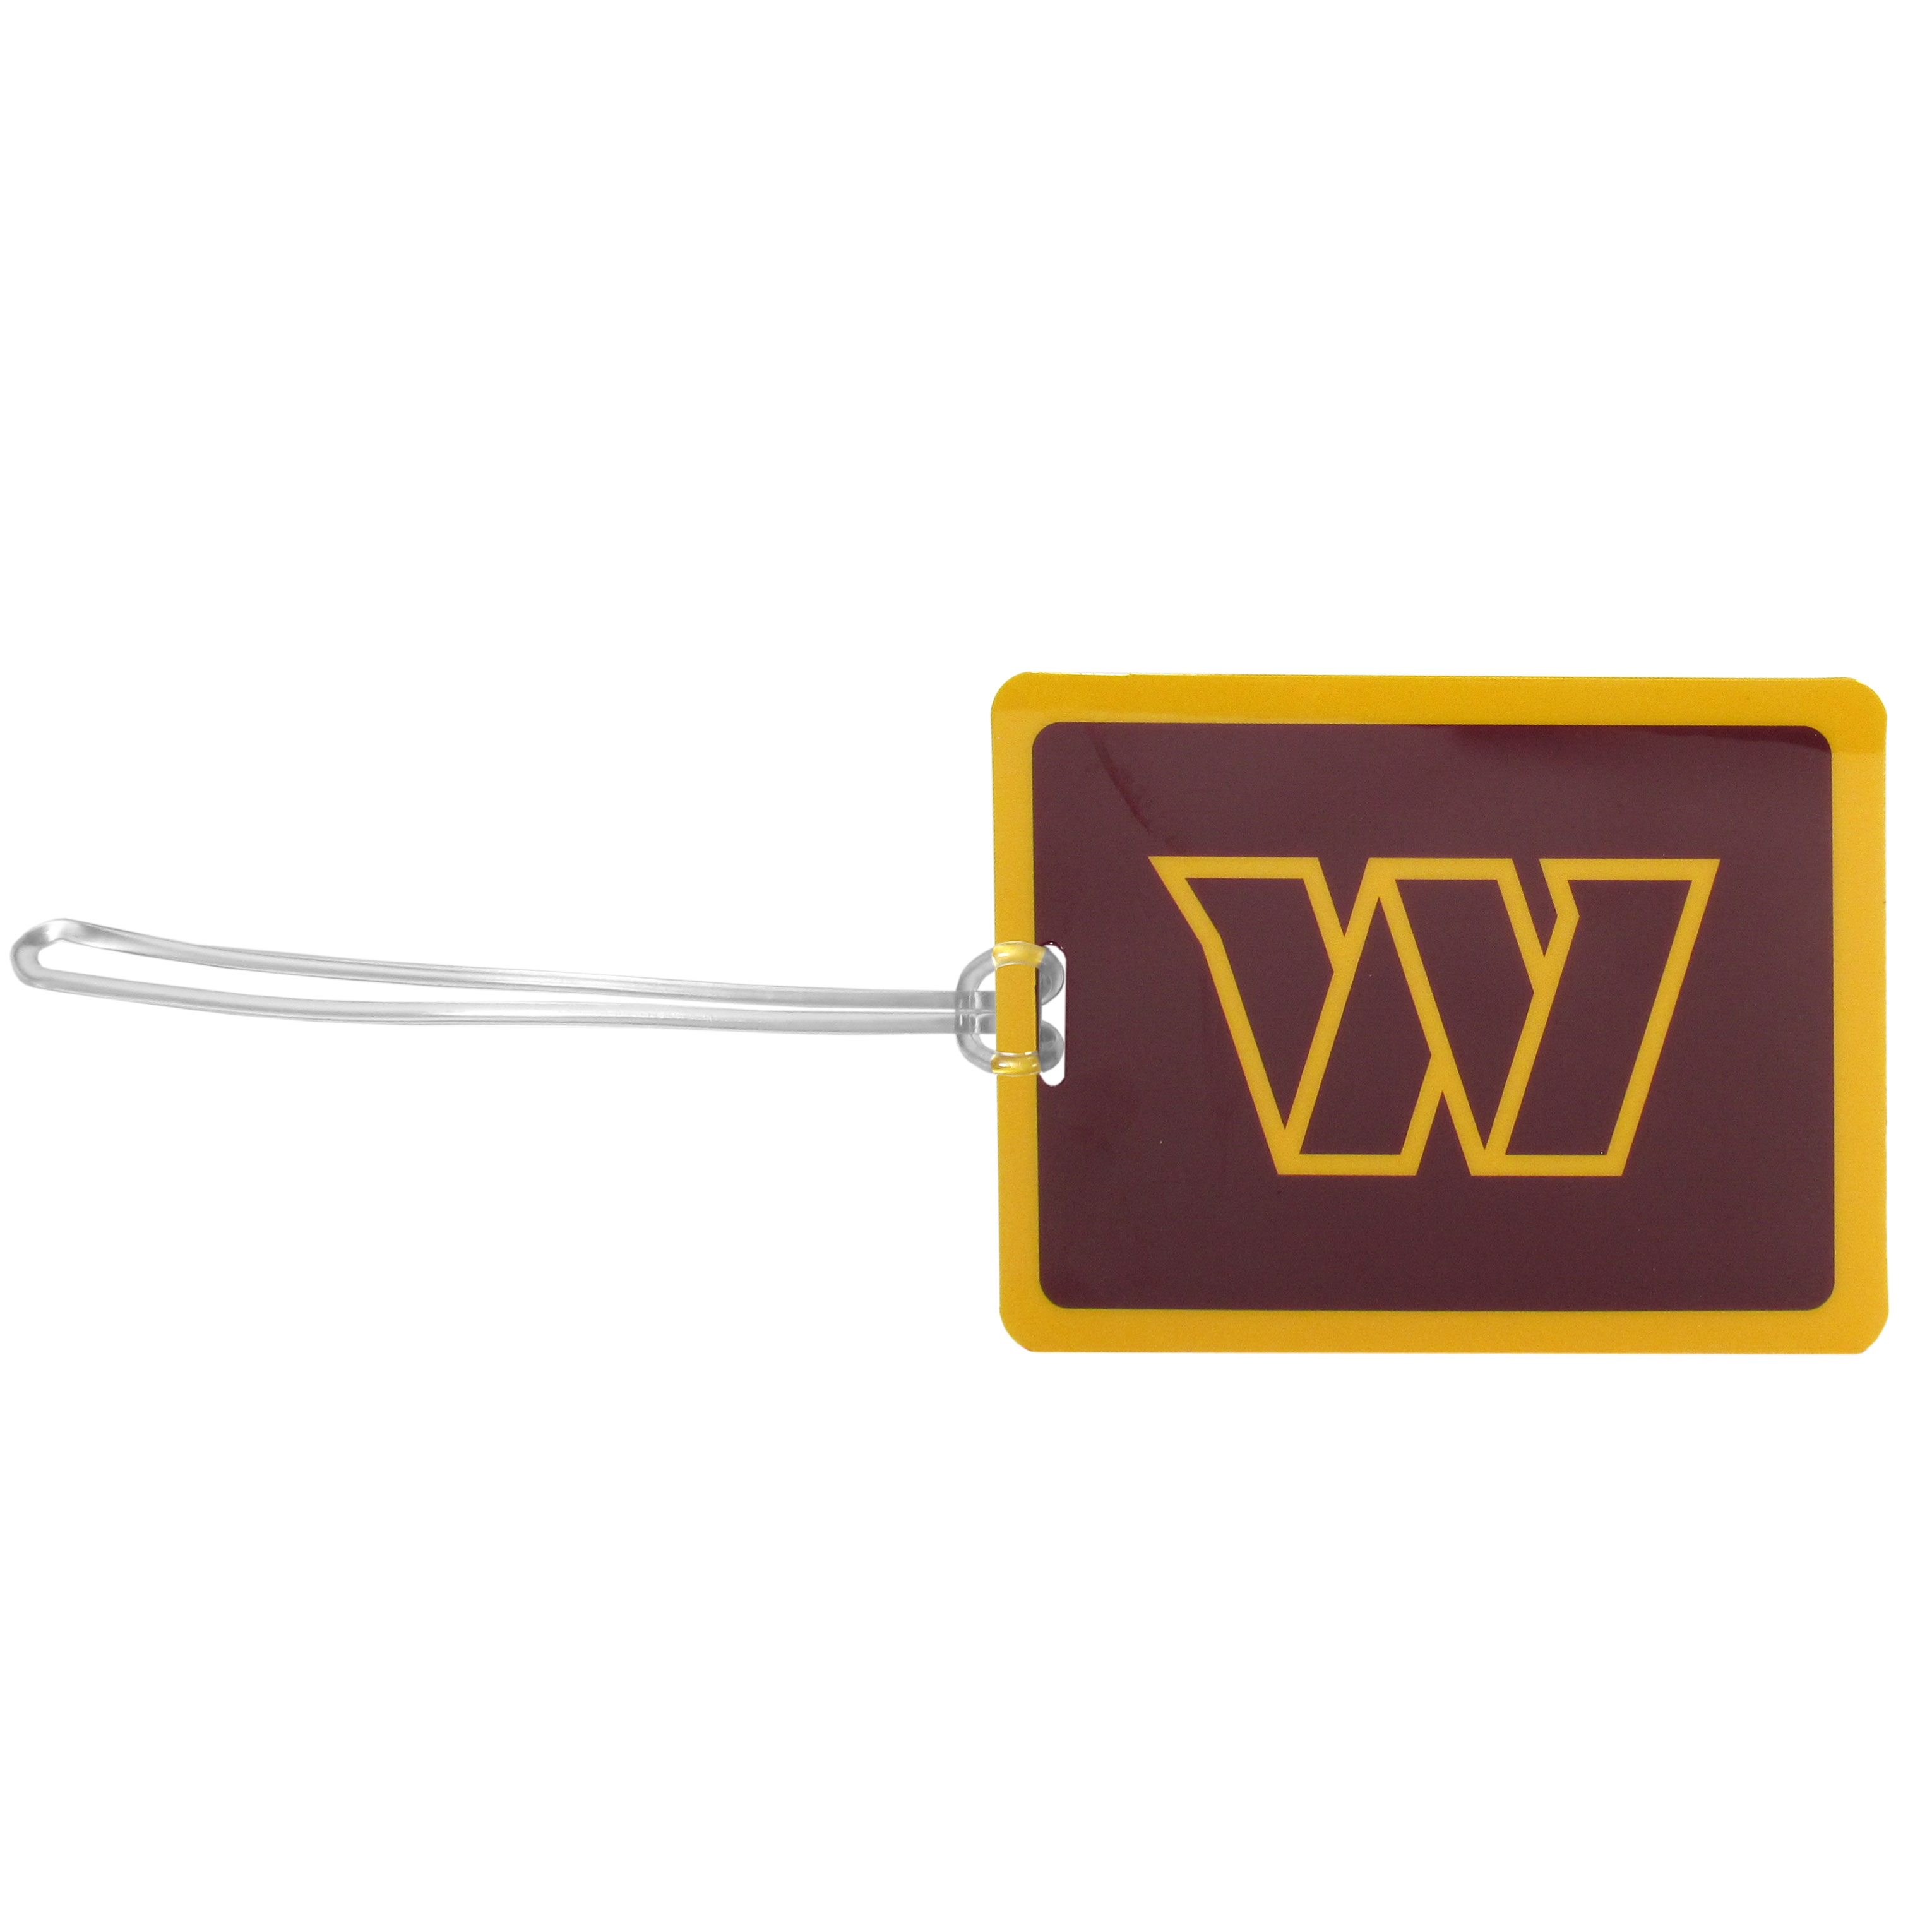 Washington Redskins Vinyl Luggage Tag - Tired of trying to spot your suitcase or bag in a sea of luggage? Try our large and colorful Washington Redskins luggage tag set. The tag is 4x3 inches and has a 5 inch cord to attach it easily to your bags, backpacks or luggage. The front of the tag features the team logo in a bright, team colored background and you can write you name, address and phone number on the back of the tag.